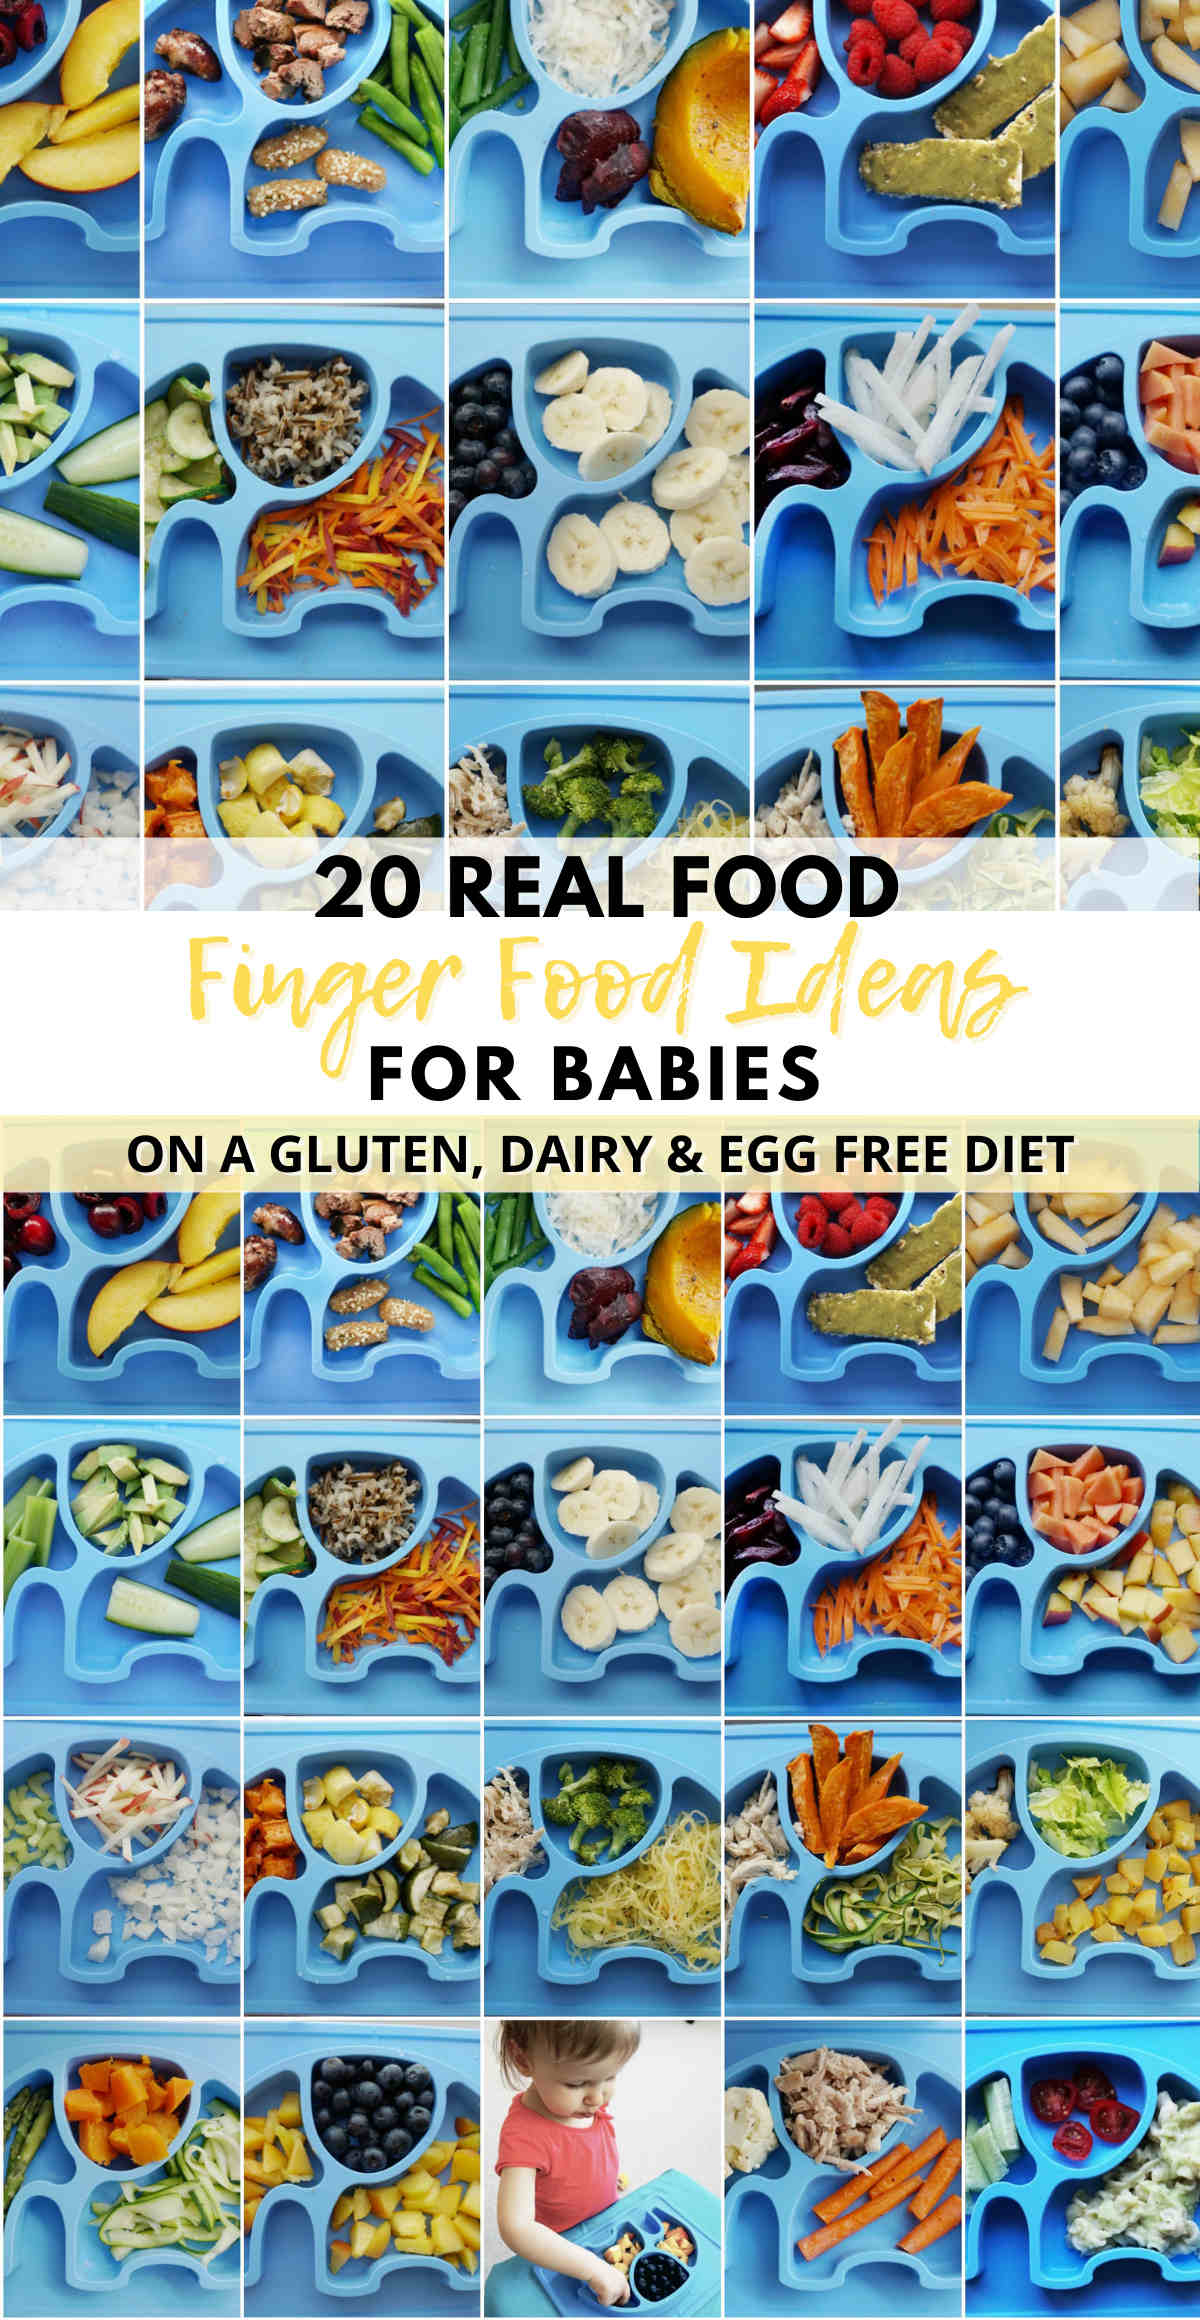 These 20 finger food ideas for babies are healthy allergy friendly (gluten free, dairy free, egg free). Easy and simple baby finger meal ideas that don't come from a box, suitable for 9+ month old babies including toddlers.